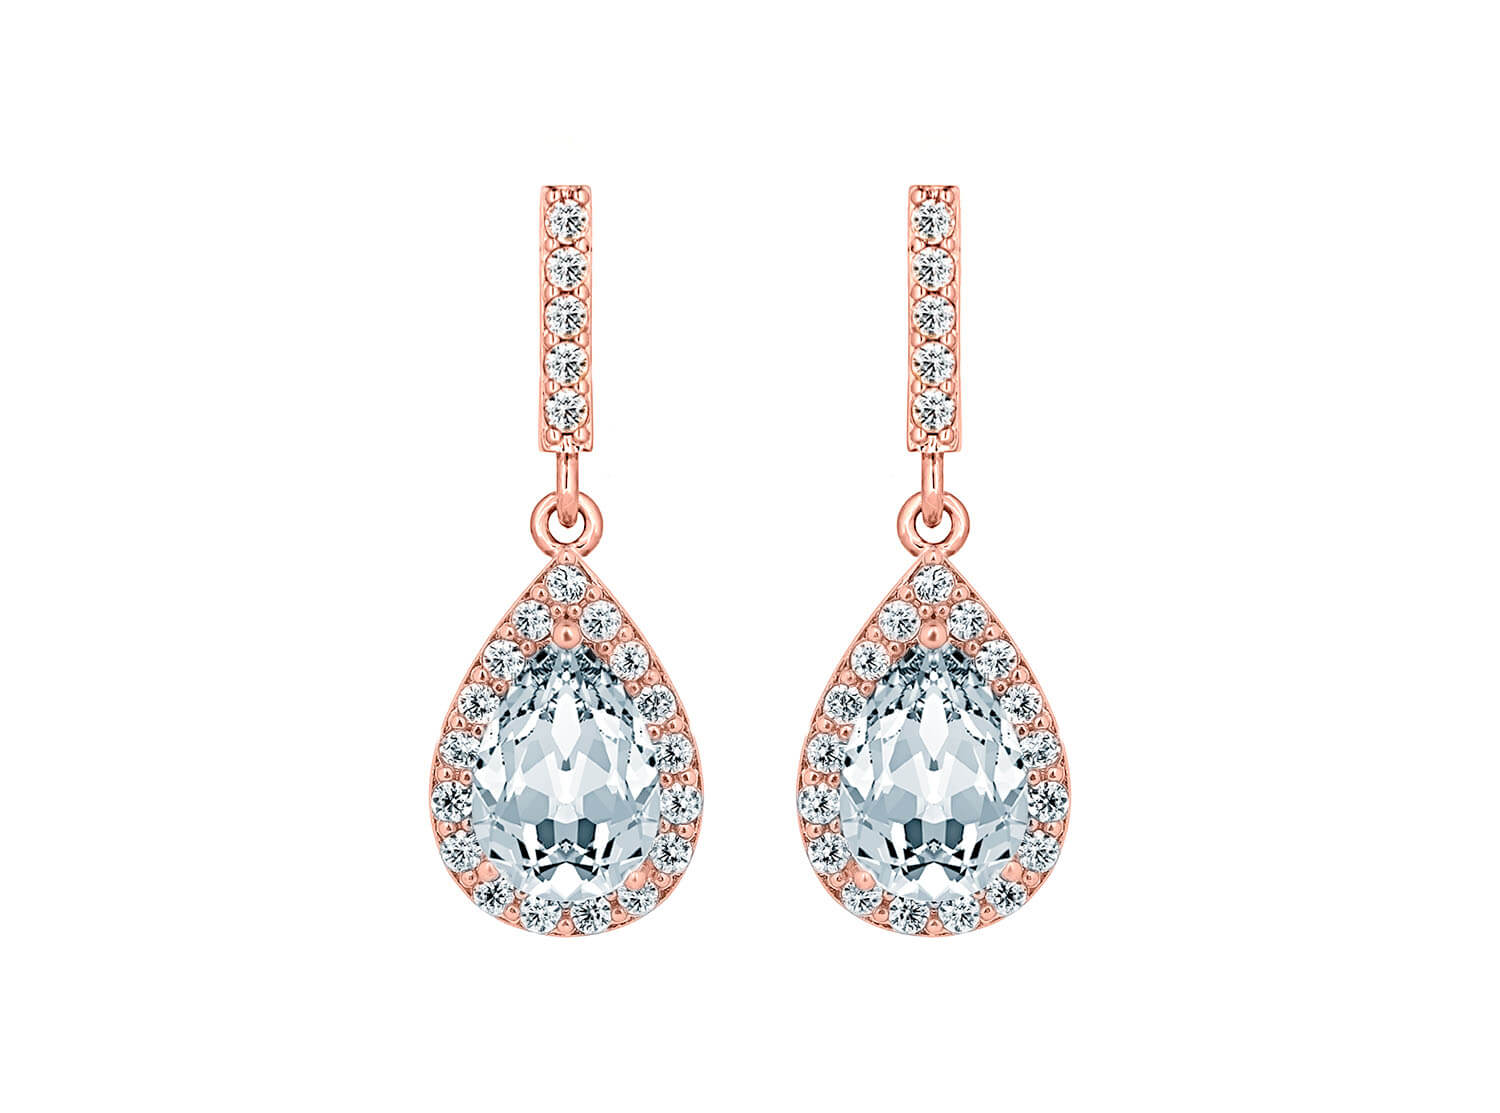 rose gold earrings with zirconia's from drks